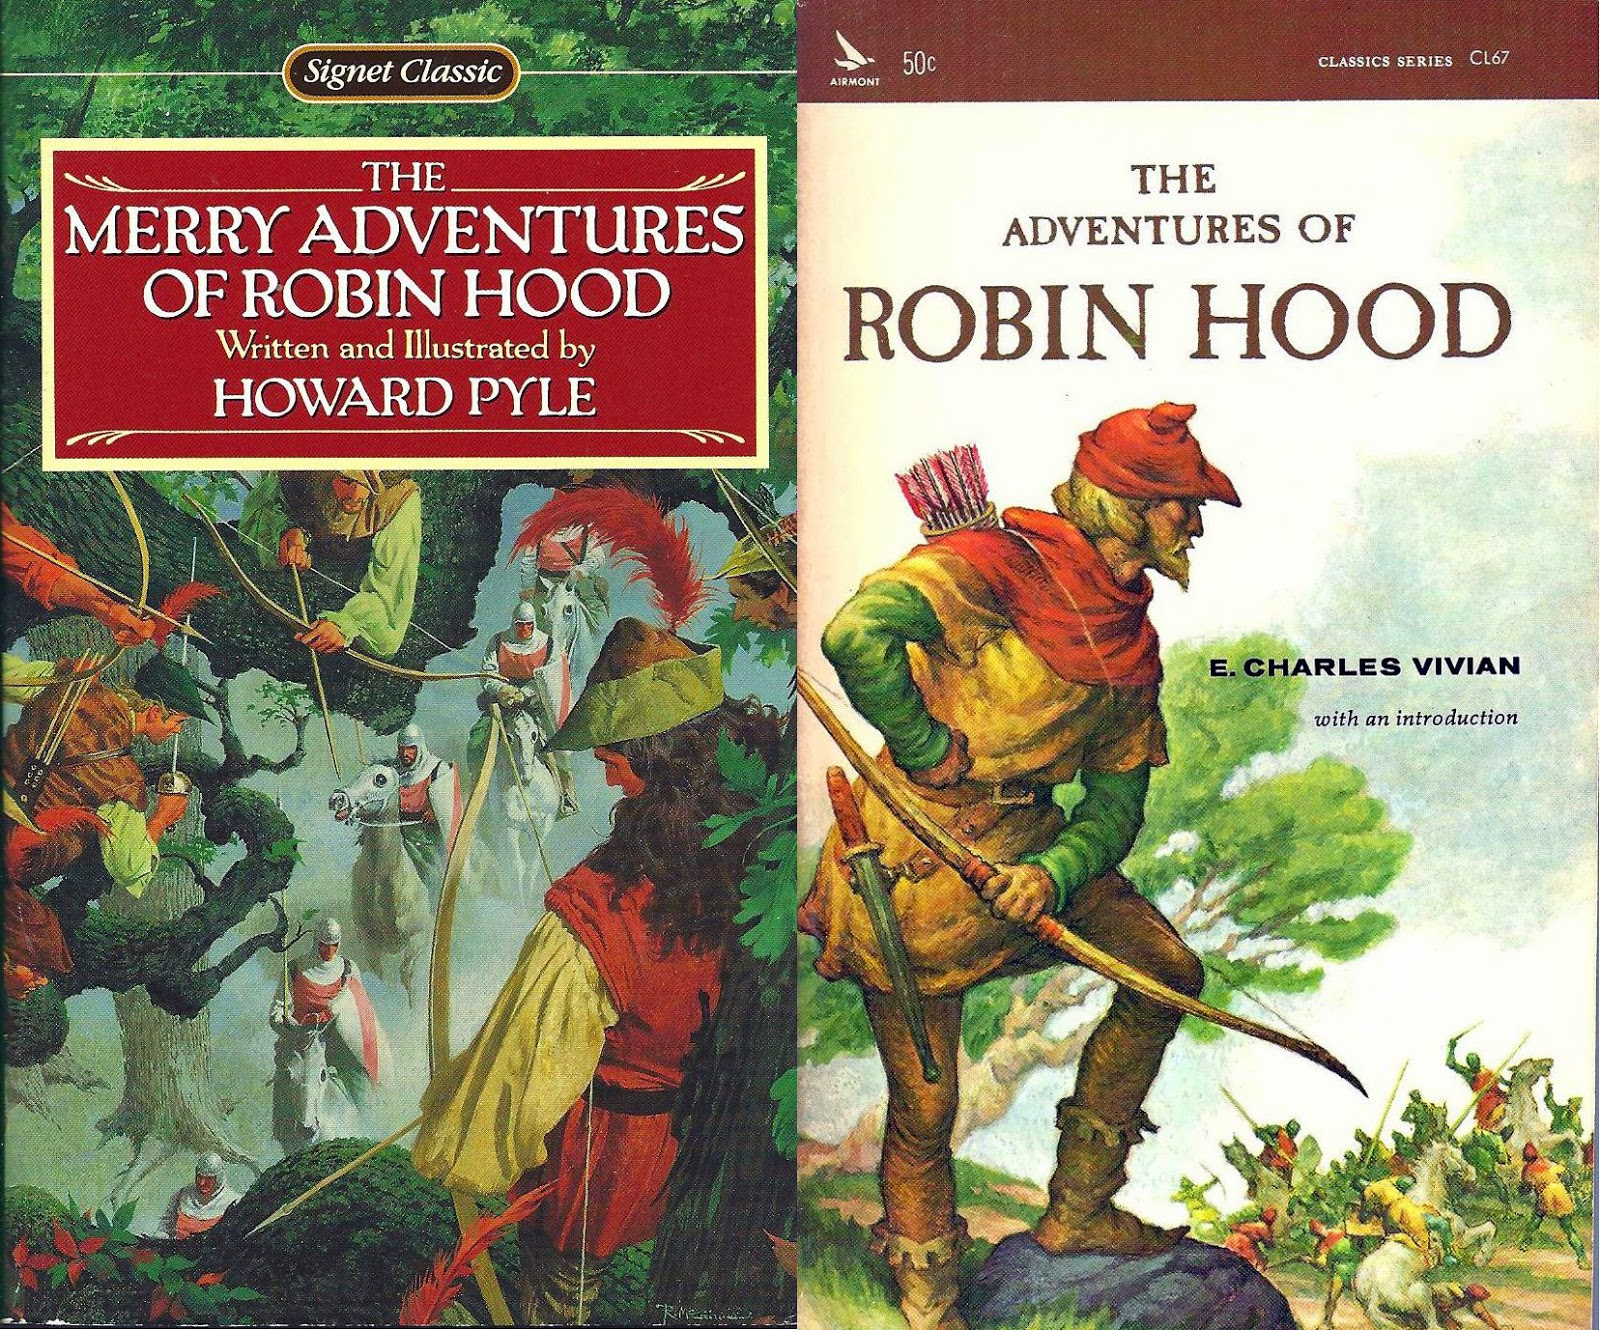 book report robin hood howard pyle Howard pyle was an american pyle took on other aspects of book design, creating classic illustrated works like the merry adventures of robin hood pyle later.